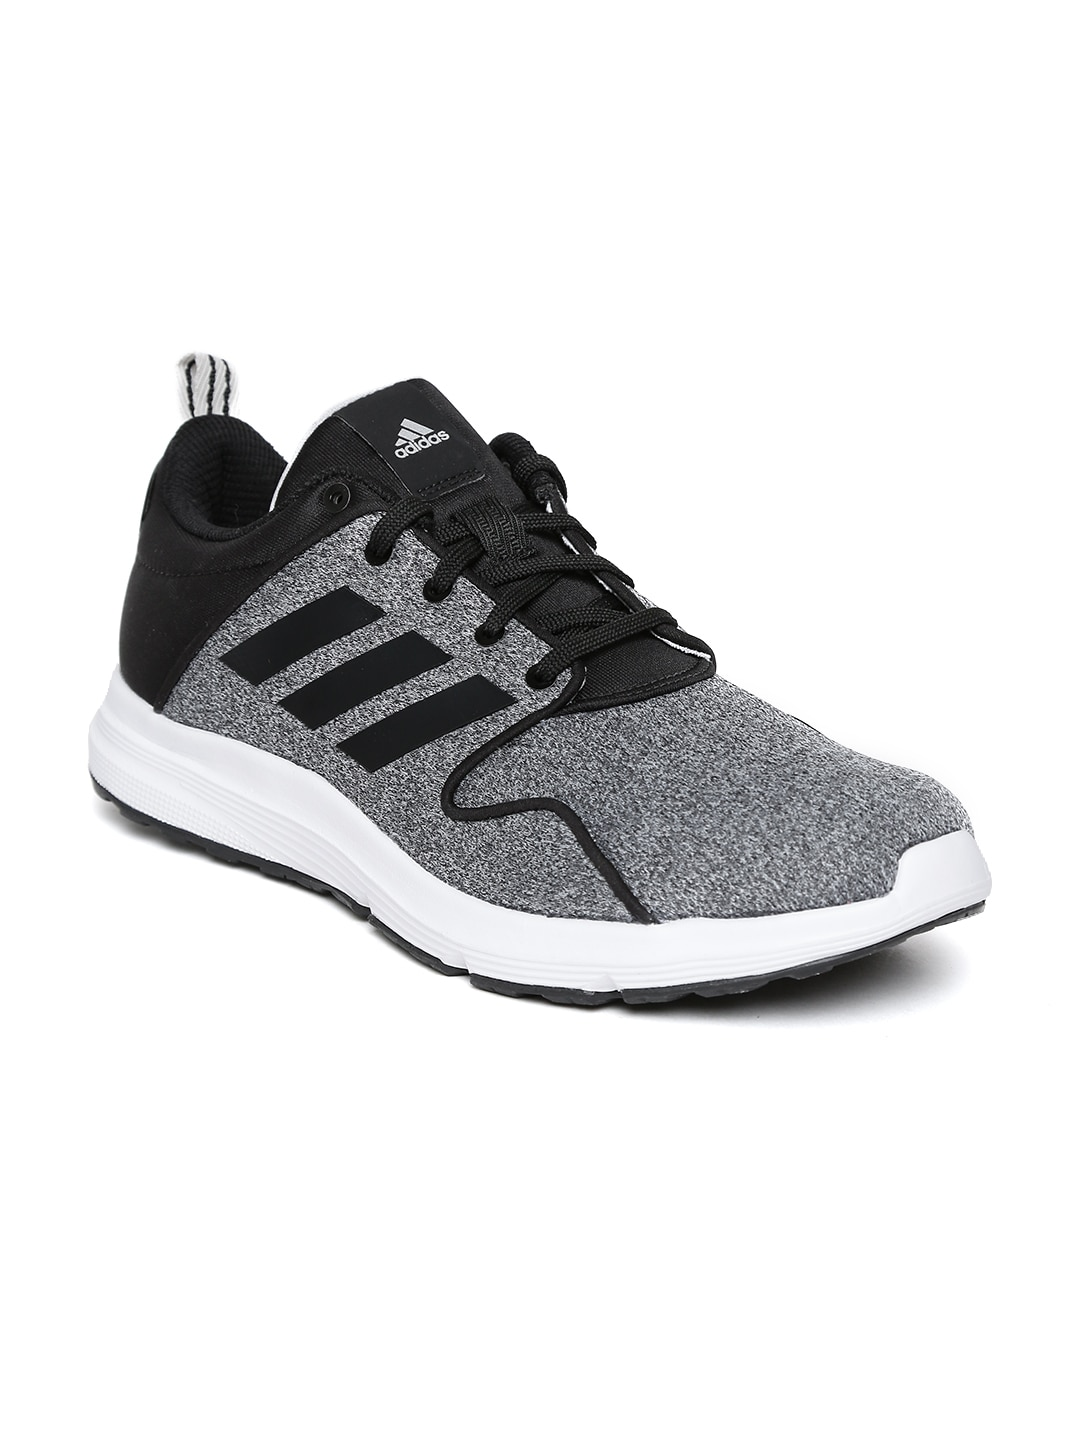 Adidas Shoes - Buy Adidas Shoes for Men   Women Online - Myntra acc72f33aec8c